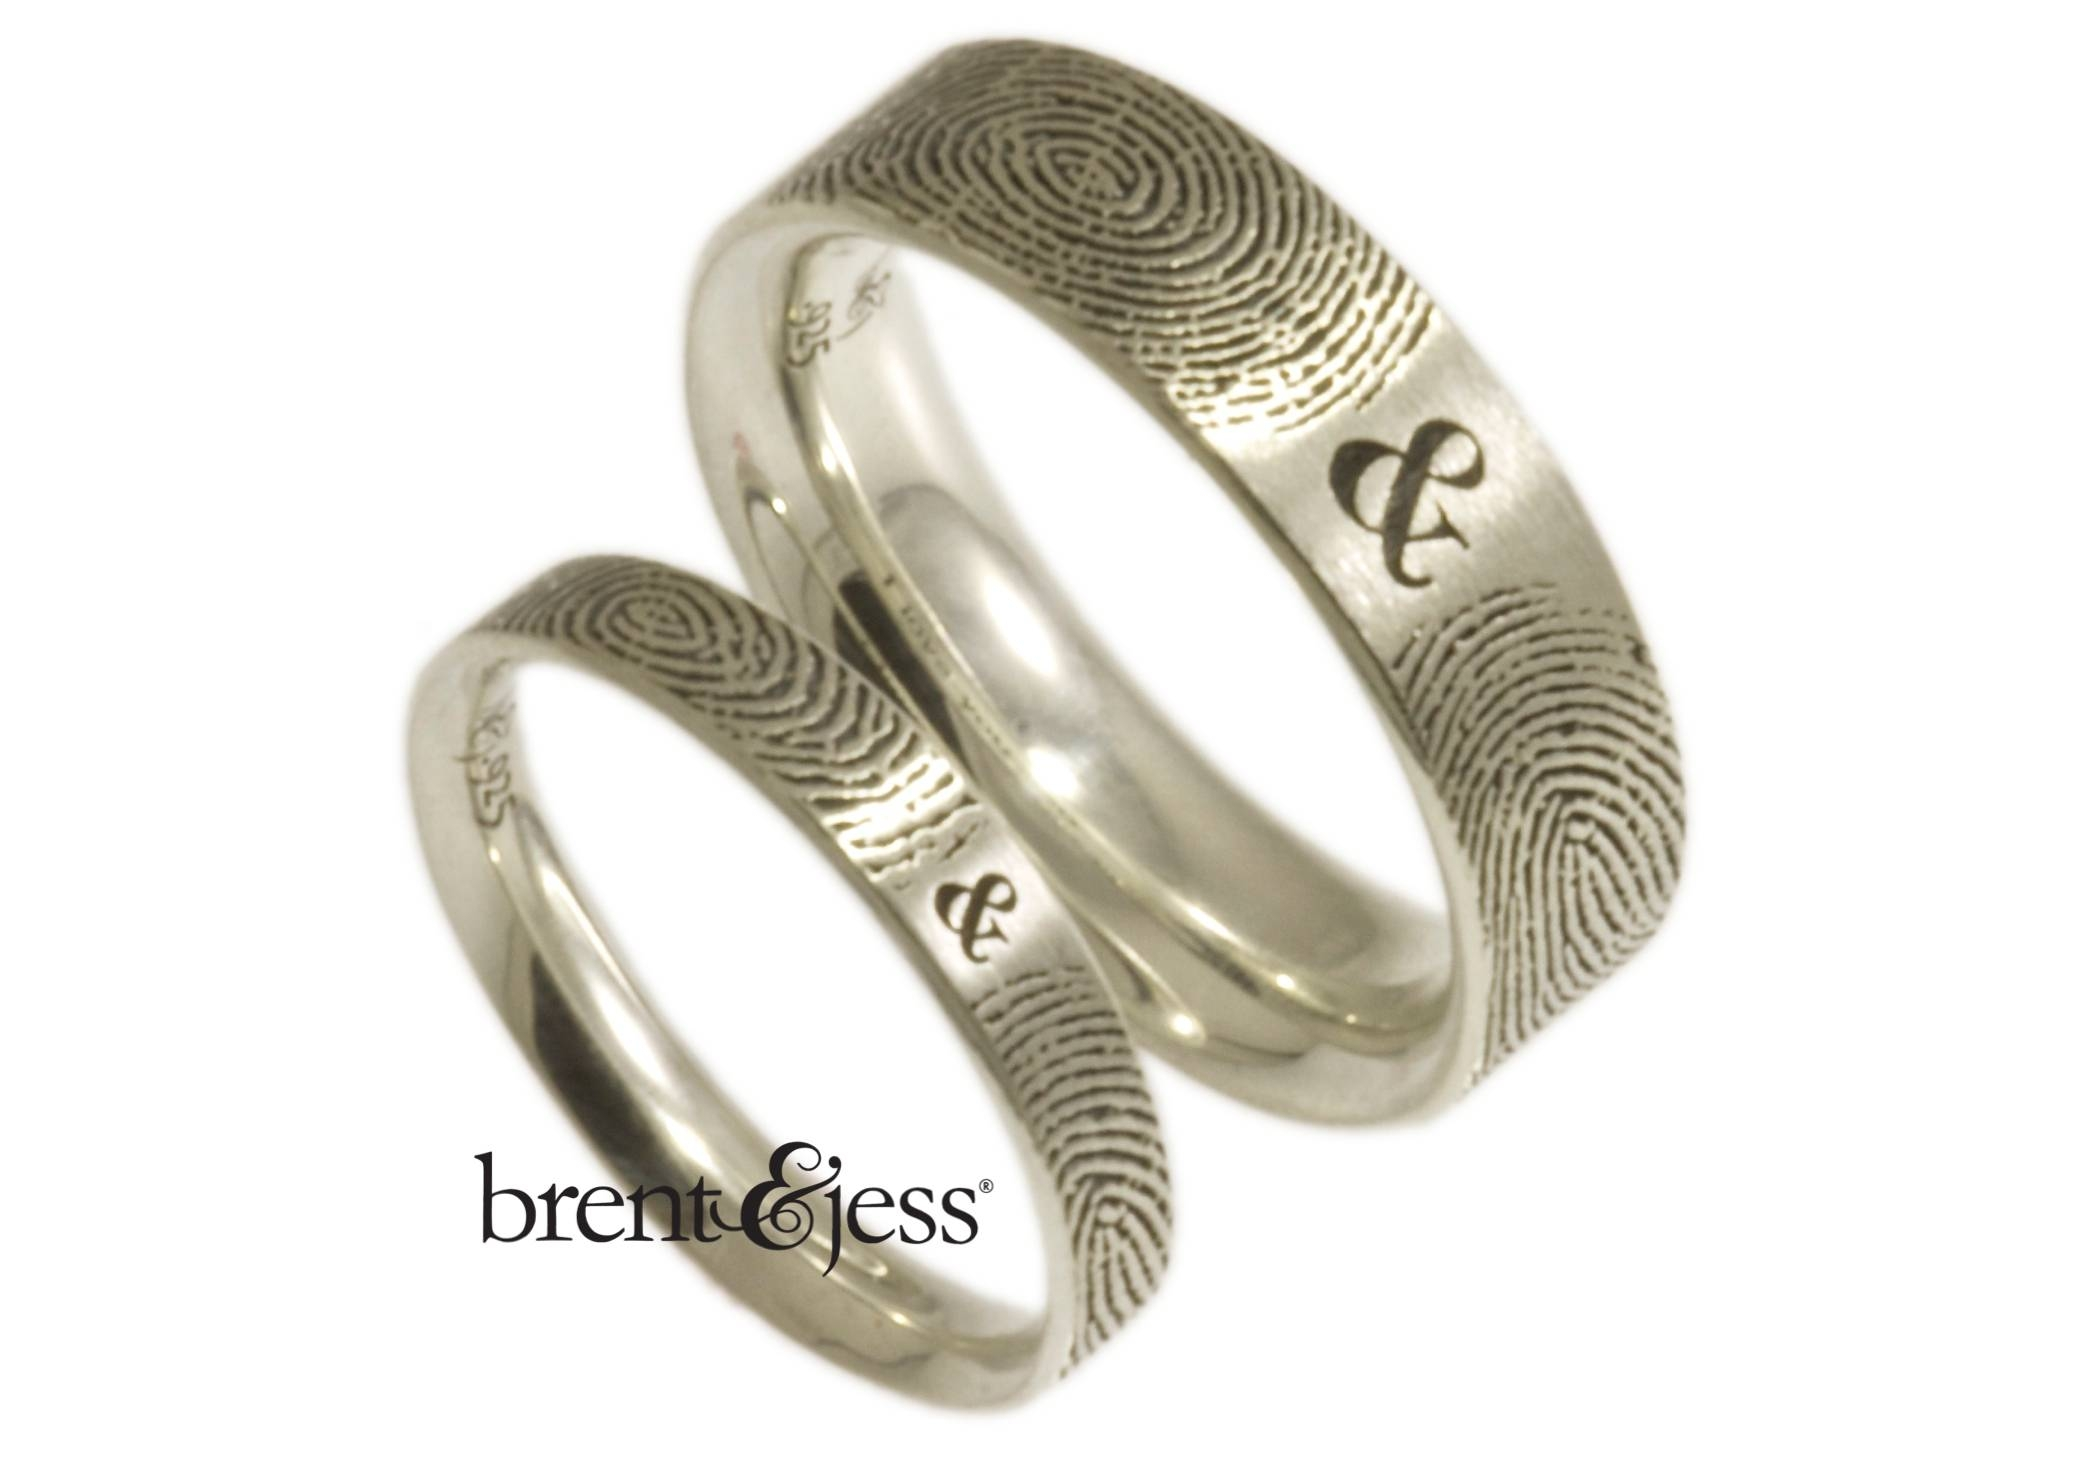 rings you have mitment than custom think sterling bands with fingerprint band silver common of more wedding in new